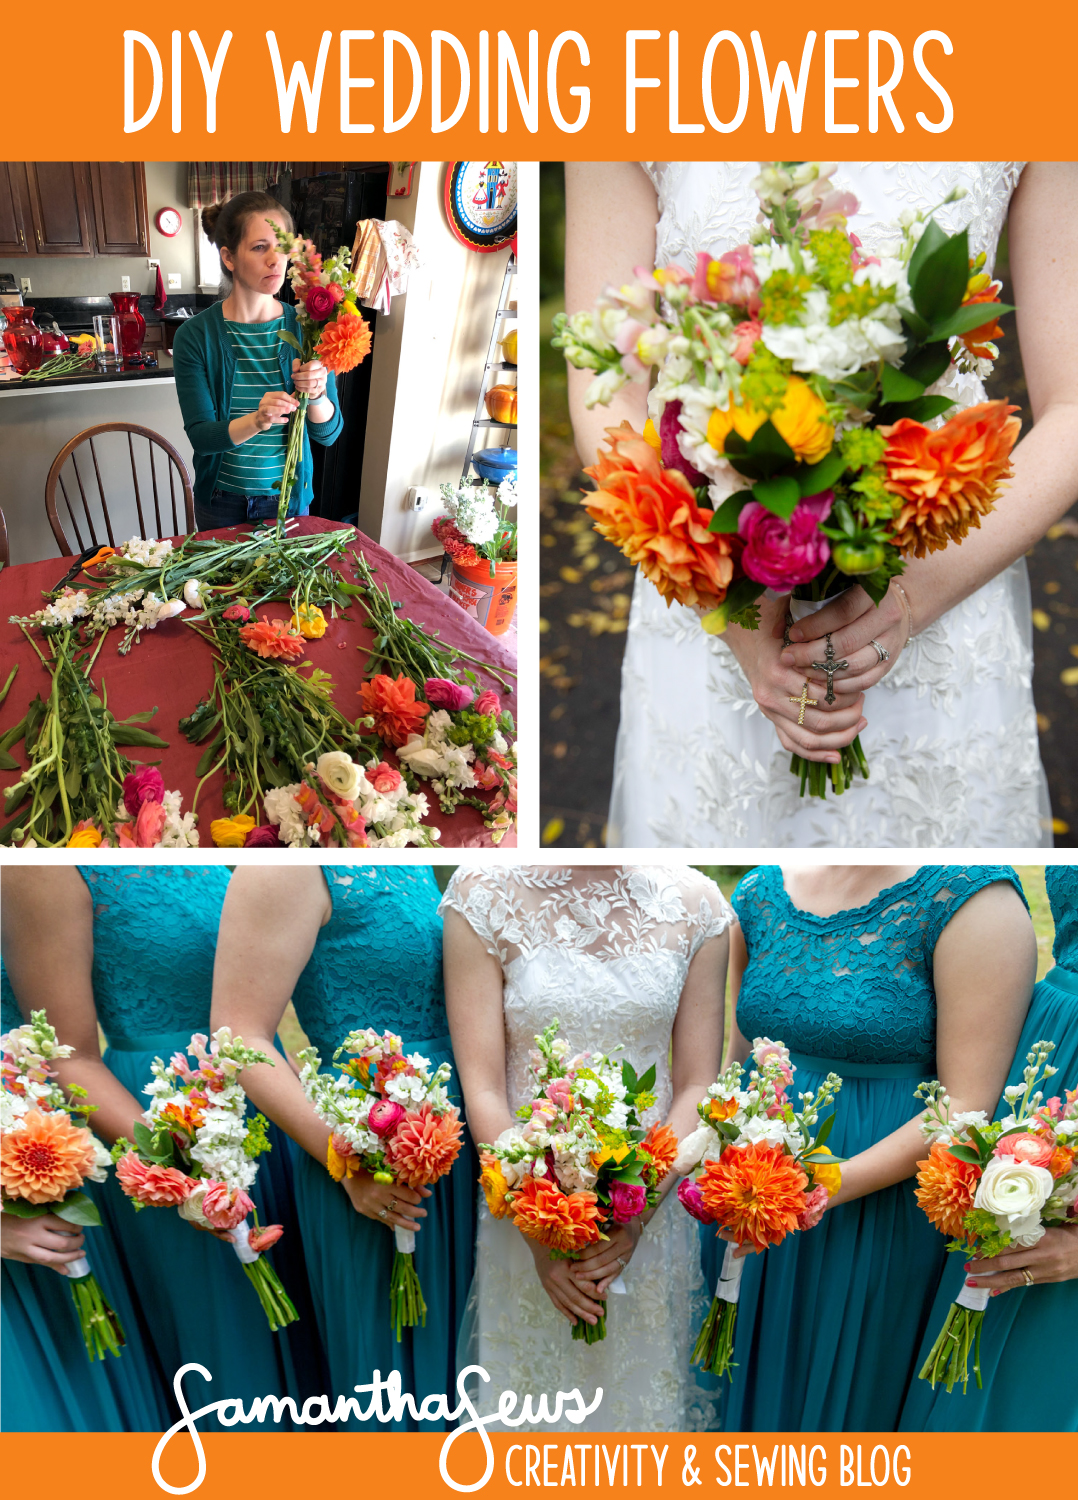 DIY Wedding Flowers: Make your own bridesmaid bouquets